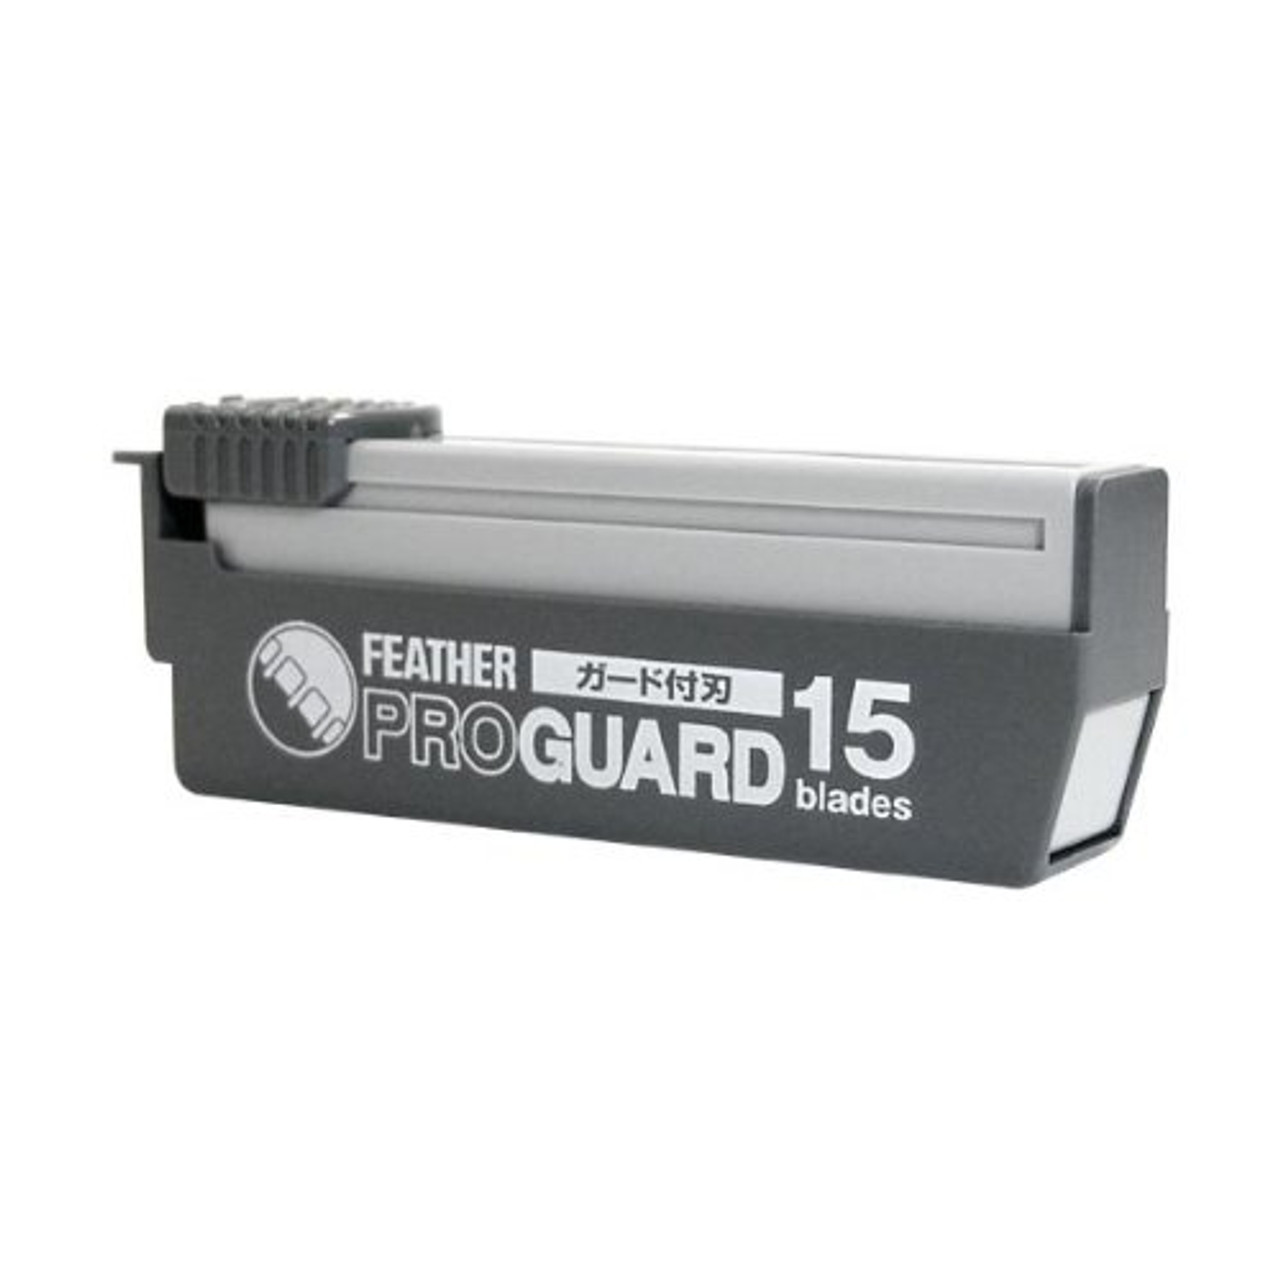 Feather Artist Club Pro Guard Razor Blades